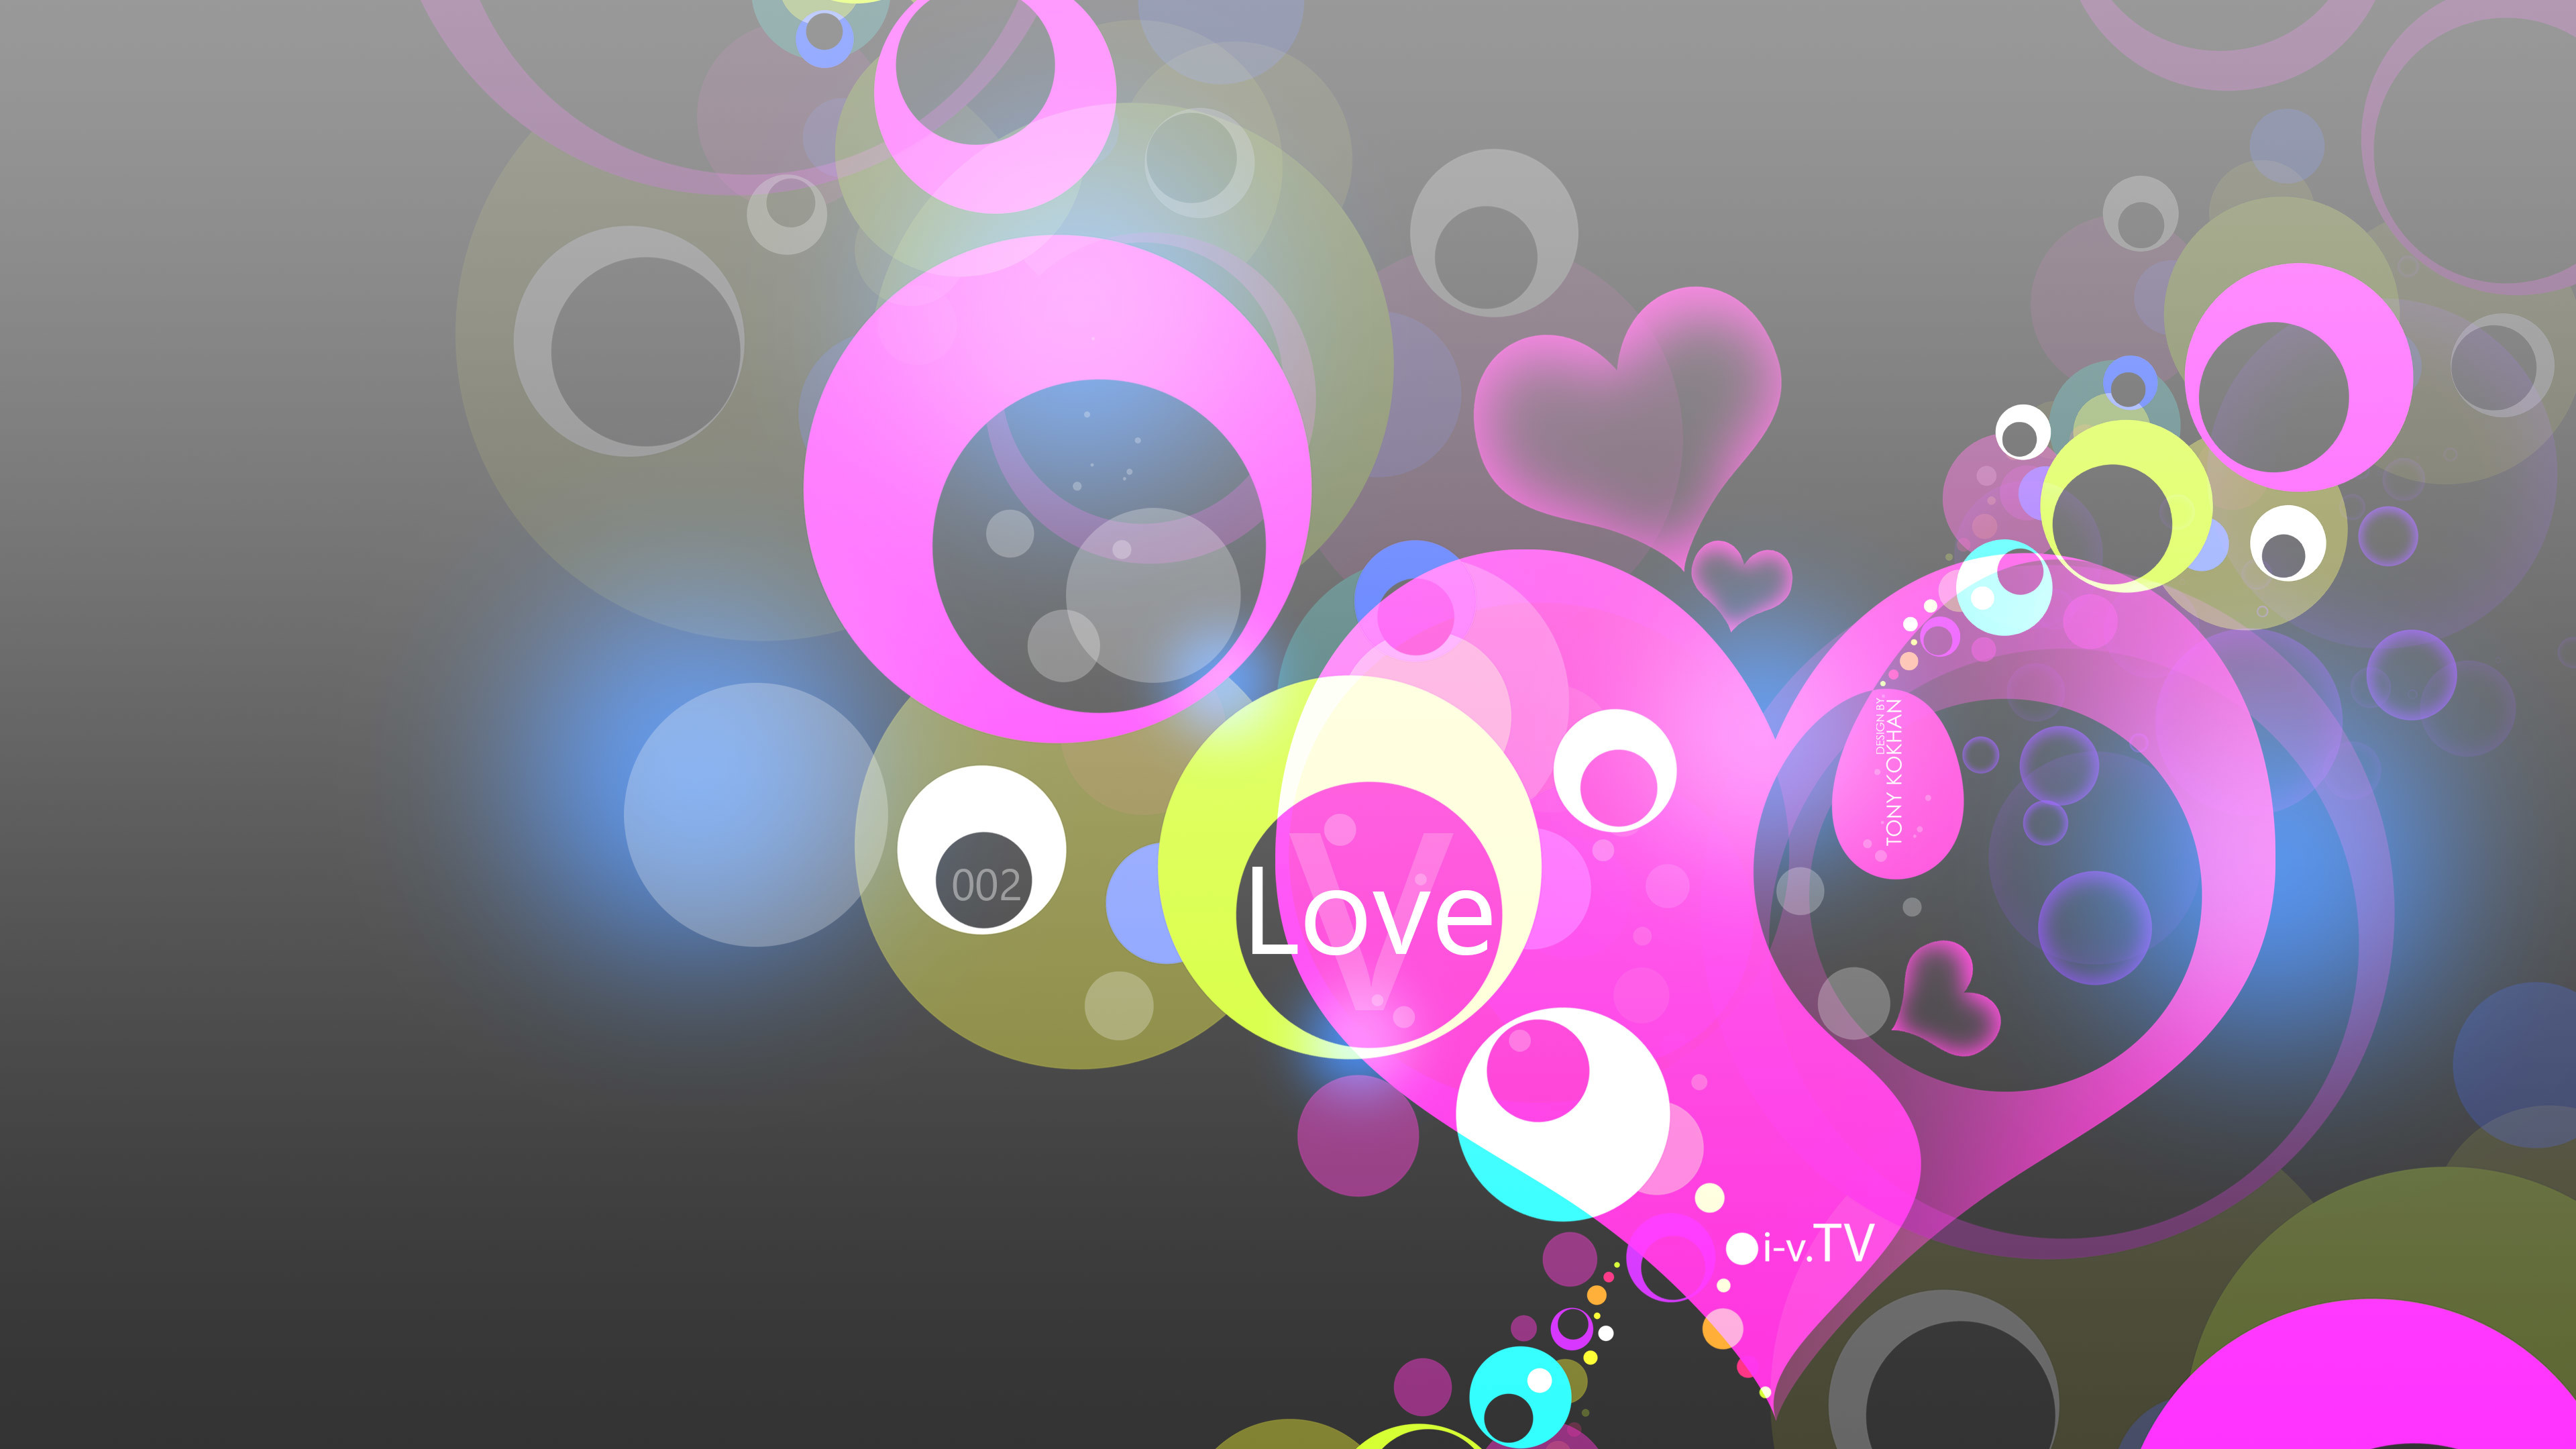 Res: 3840x2160, Love-Simple-Creative-Abstract-Two-Word-Style-2015-